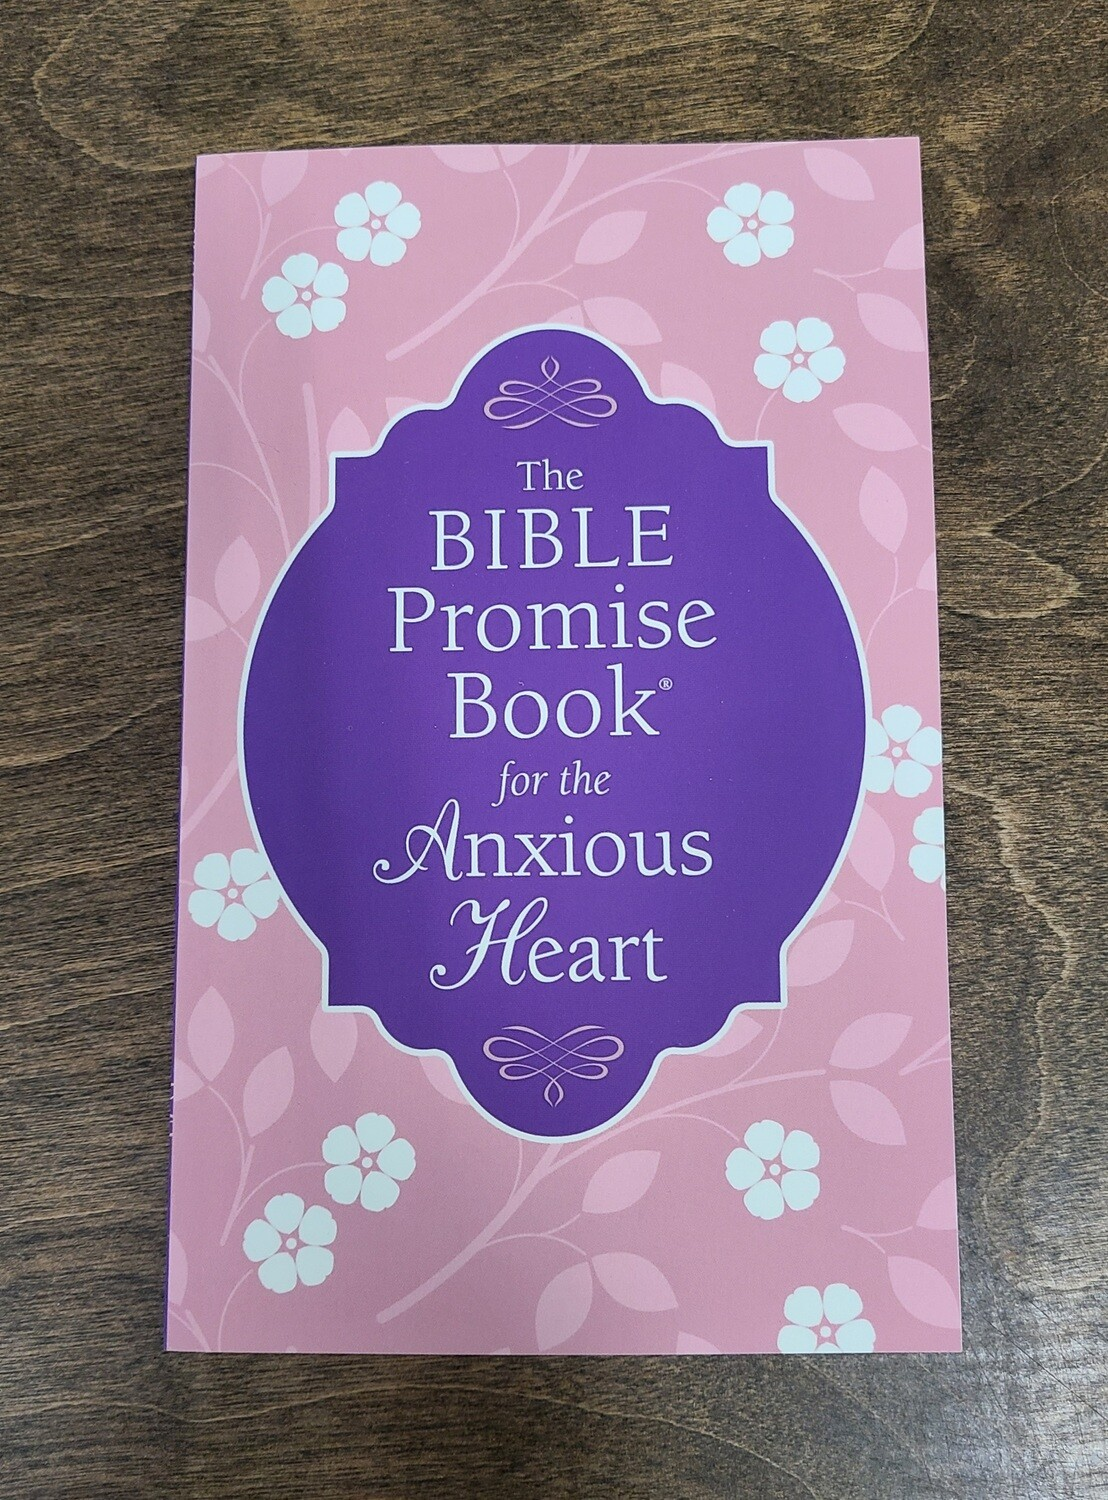 The Bible Promise Book for the Anxious Heart by Janice Thompson